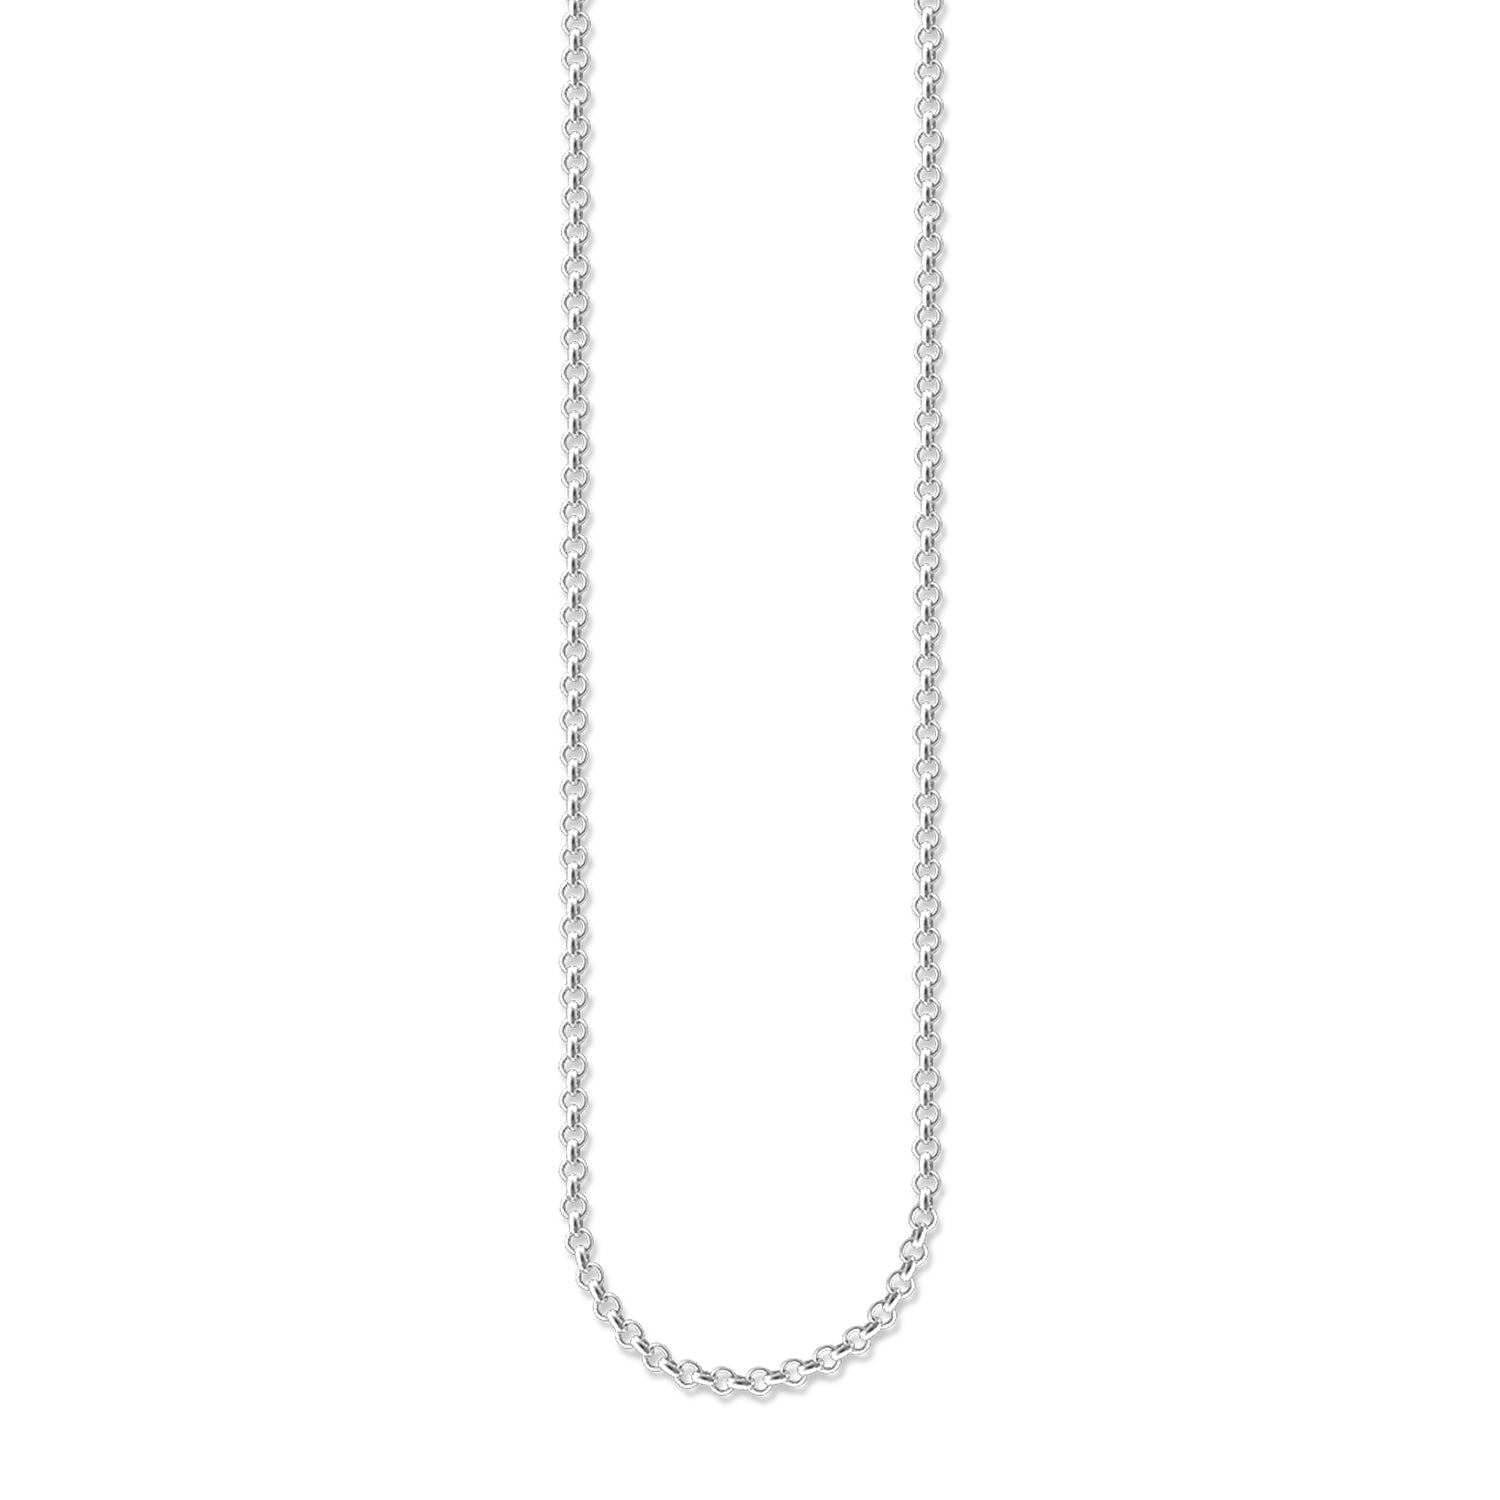 Thomas Sabo Charm Club Silver Round Belcher Necklace